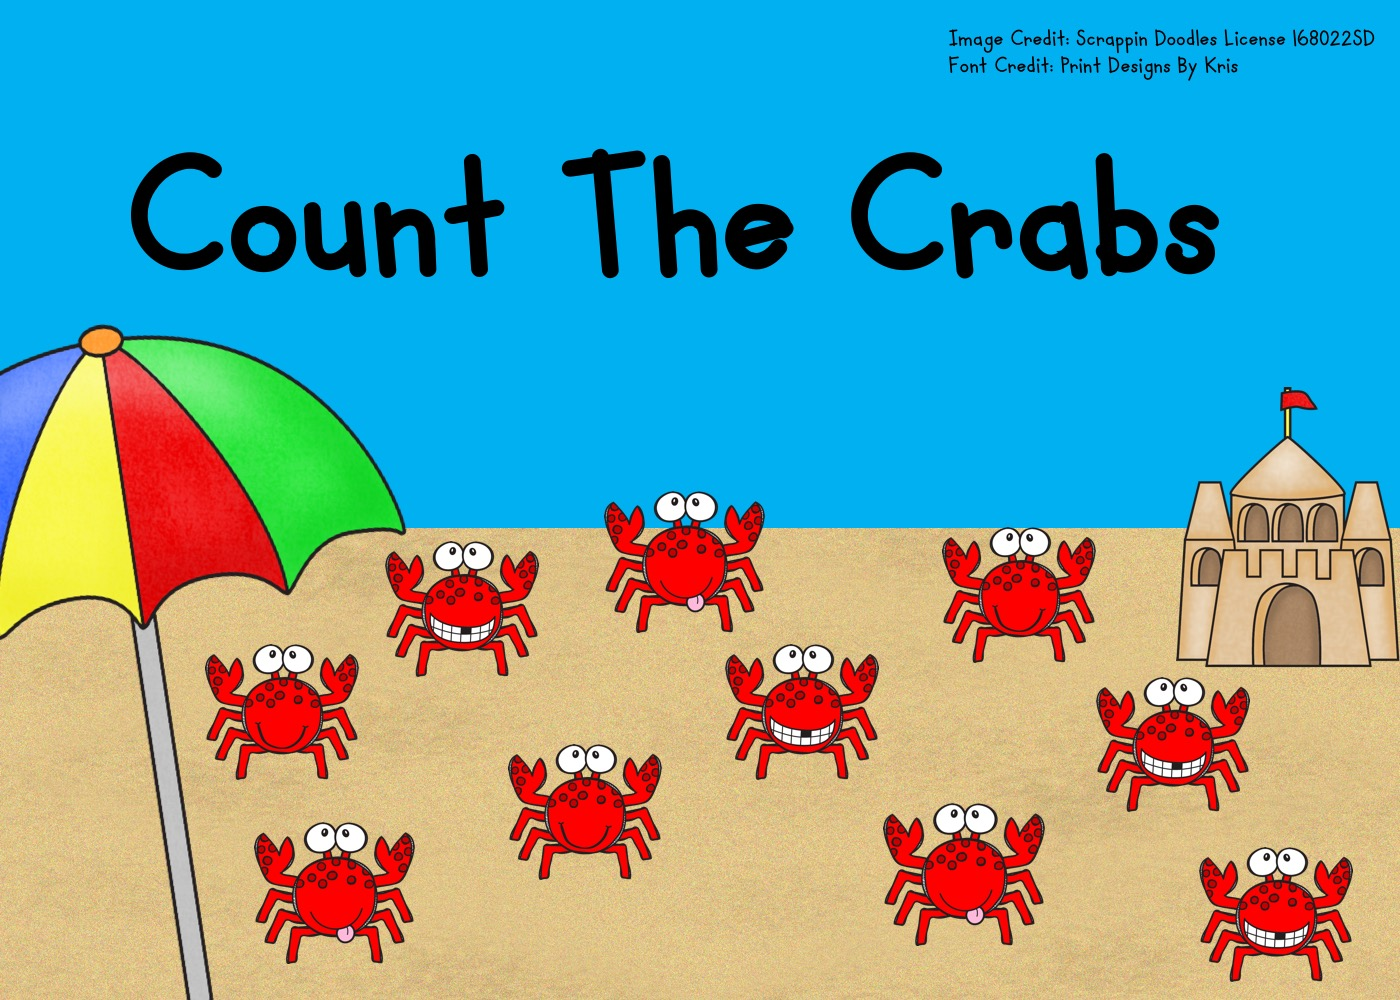 Fun Ocean Printables for Preschool and Kindergarten | Summer Themed Counting Games | Hands On Math Homeschool Activities | Kids Classroom Center Ideas and Worksheets #FreePrintableWorksheetsForKids #crab #ocean #summer #counting